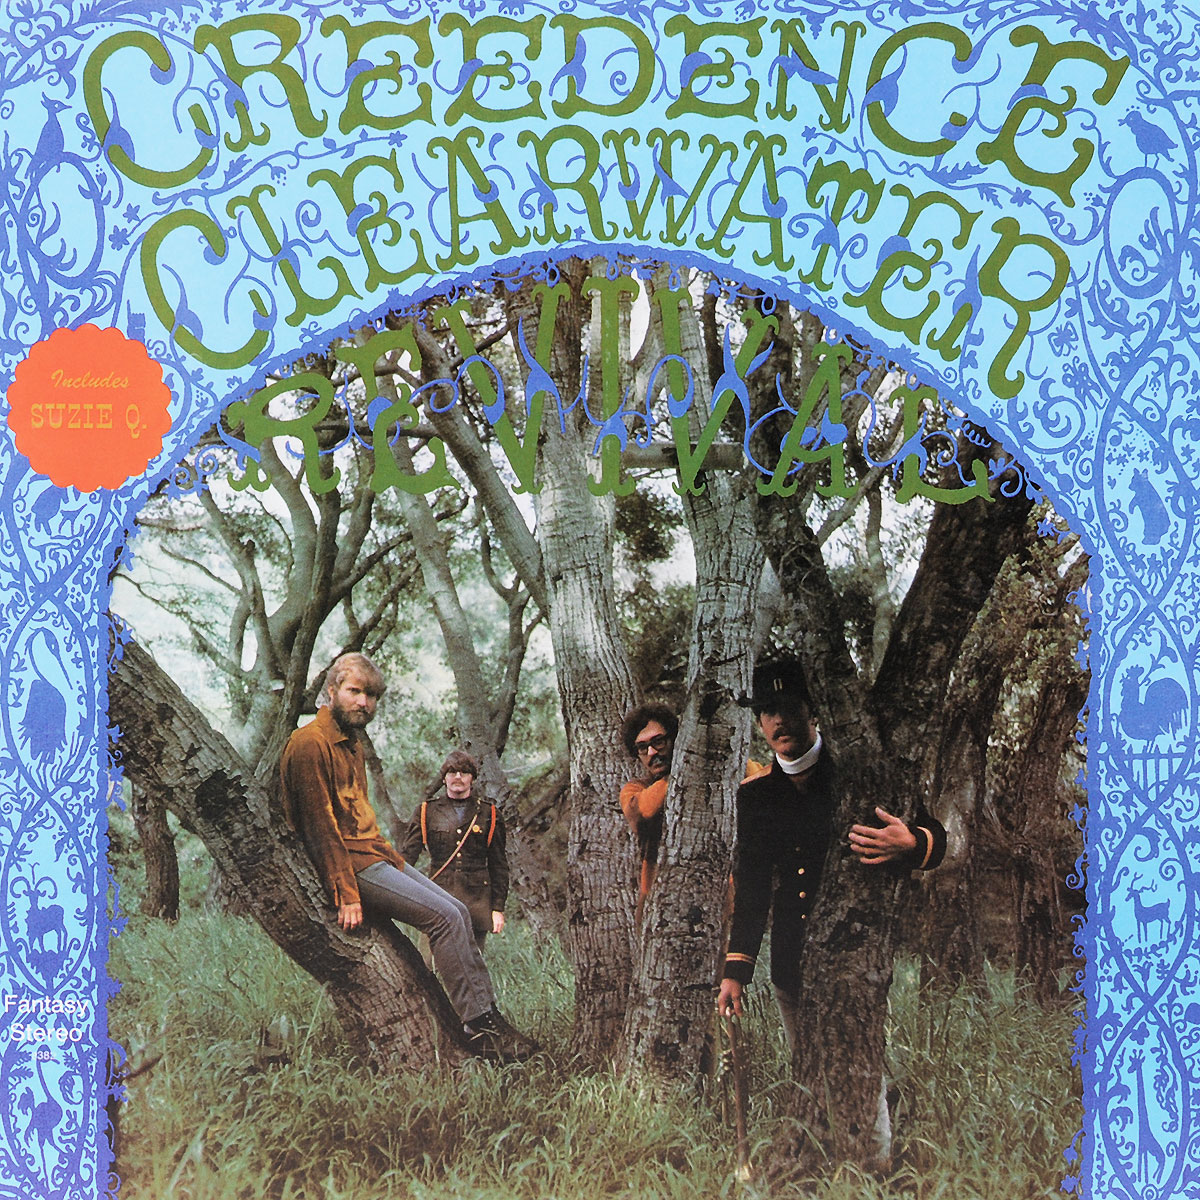 Creedence Clearwater Revival Creedence Clearwater Revival. Creedence Clearwater Revival (LP) вешала clearwater home